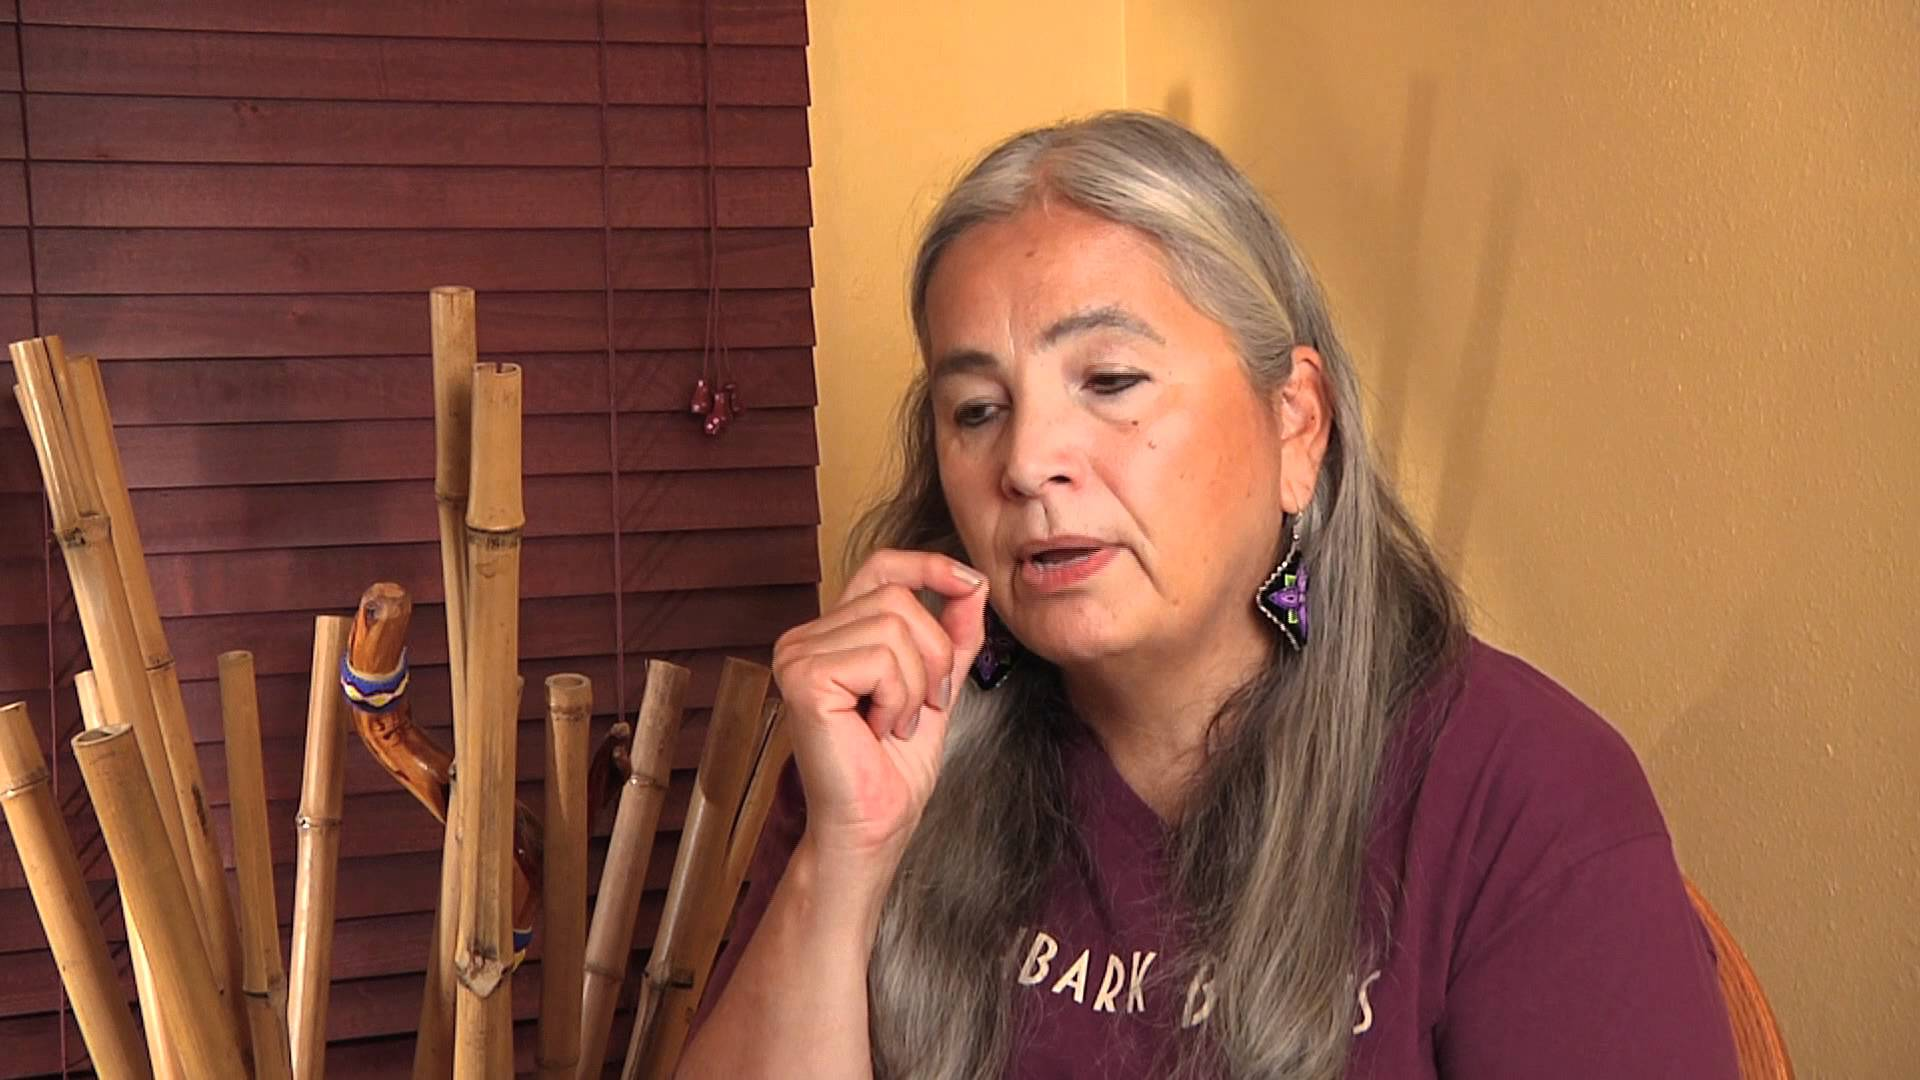 Mary Annette Pember: Denise Lajimodiere revives birch bark biting